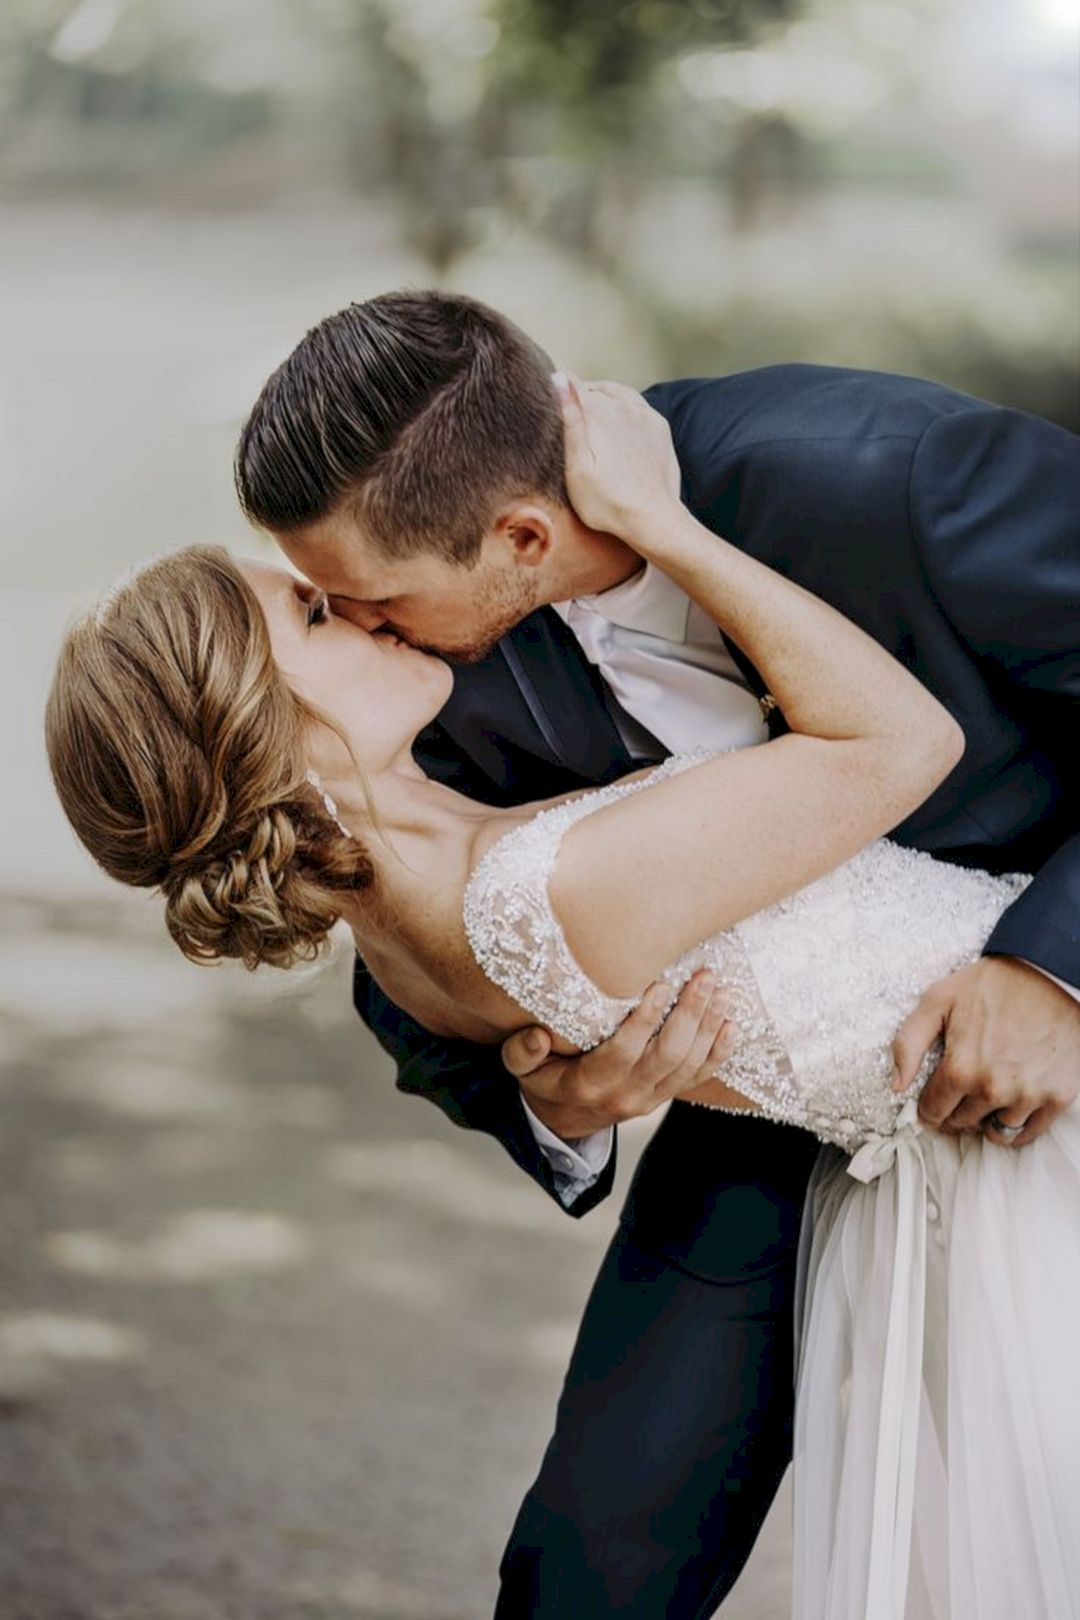 18 Incredible Quinceanera Photography Ideas For Wedding Inspiration is part of Wedding photography checklist - Wedding photos will be displayed forever on the walls of your home  For that, there's nothing wrong with making a photo that is creative, timeless, and makes all eyes not bored to see it  As …